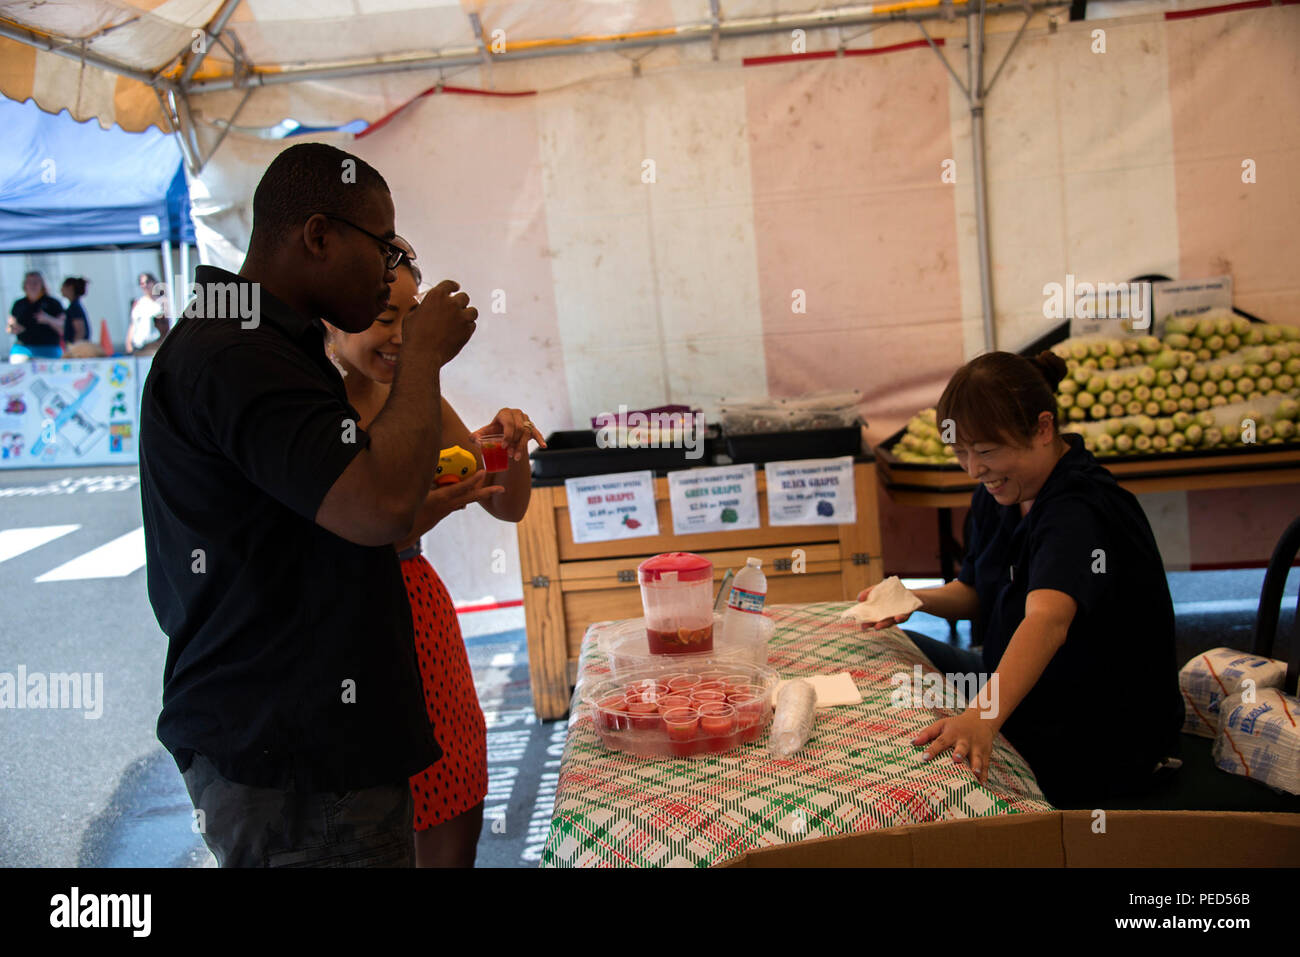 150801-N-UP569-051 NAVAL AIR FACILITY ATSUGI, Japan (August 1, 2015) –  Engineering Aid 2nd Class Jay Murphy and Iaya Murphy try a sample of fresh watermelon and lime juice prepared by a local produce representative Ryoko Kano during Naval Air Facility (NAF) Atsugi's Healthy Lifestyle Festival. The event encourages base residents to develop a healthy lifestyle through exercise and healthy eating. (U.S. Navy photo by Mass Communication Specialist 3rd Class Jason Bawgus/RELEASED) - Stock Image